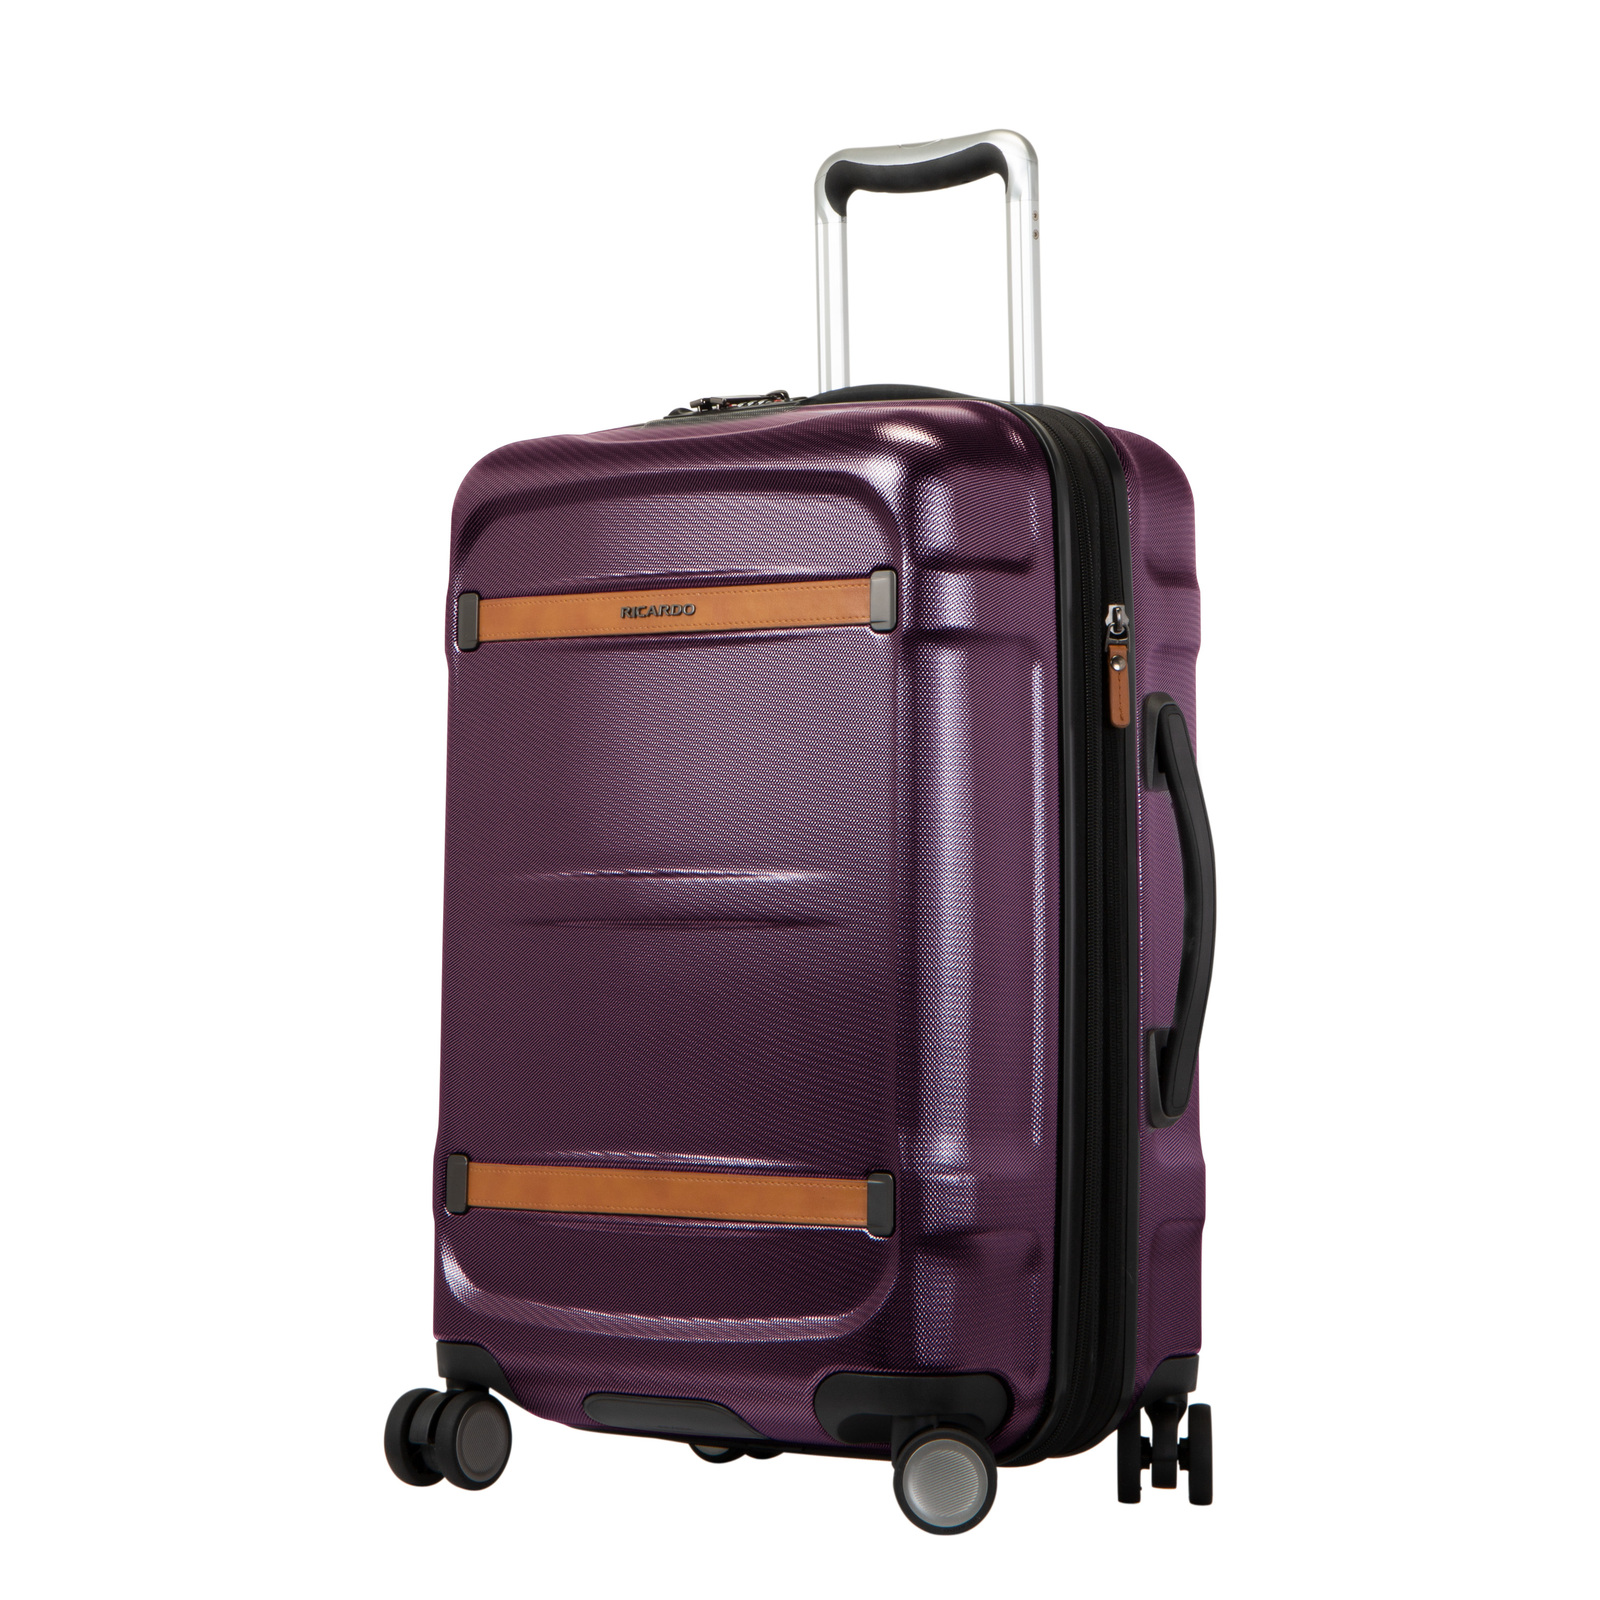 Primary image for Ricardo Montecito Hardside Carry-On Suitcase Violet